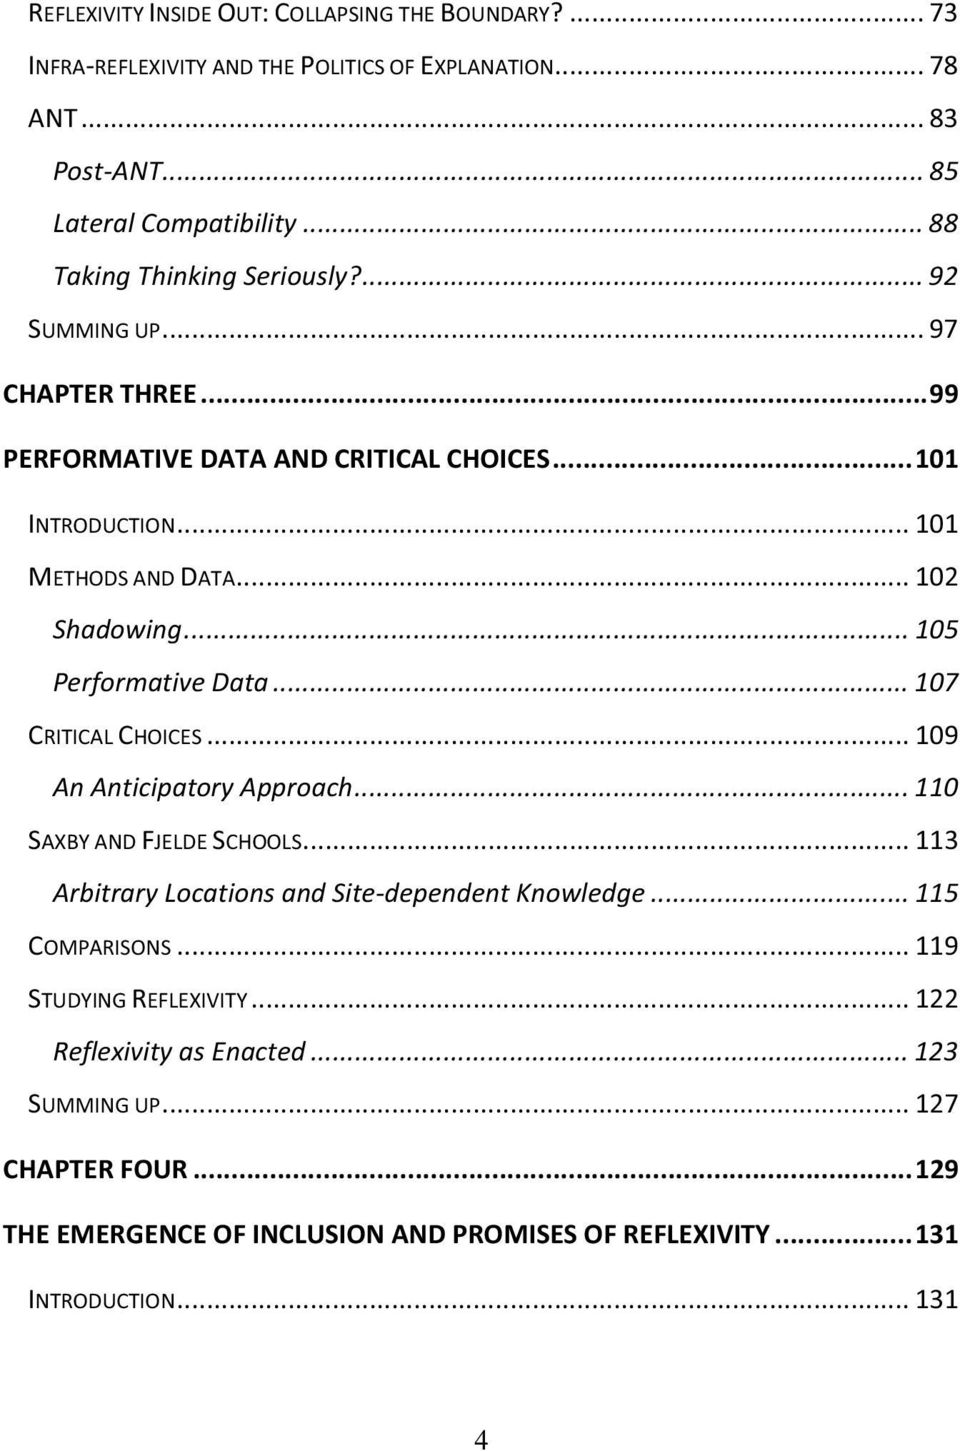 .. 105 Performative Data... 107 CRITICAL CHOICES... 109 An Anticipatory Approach... 110 SAXBY AND FJELDE SCHOOLS... 113 Arbitrary Locations and Site-dependent Knowledge.